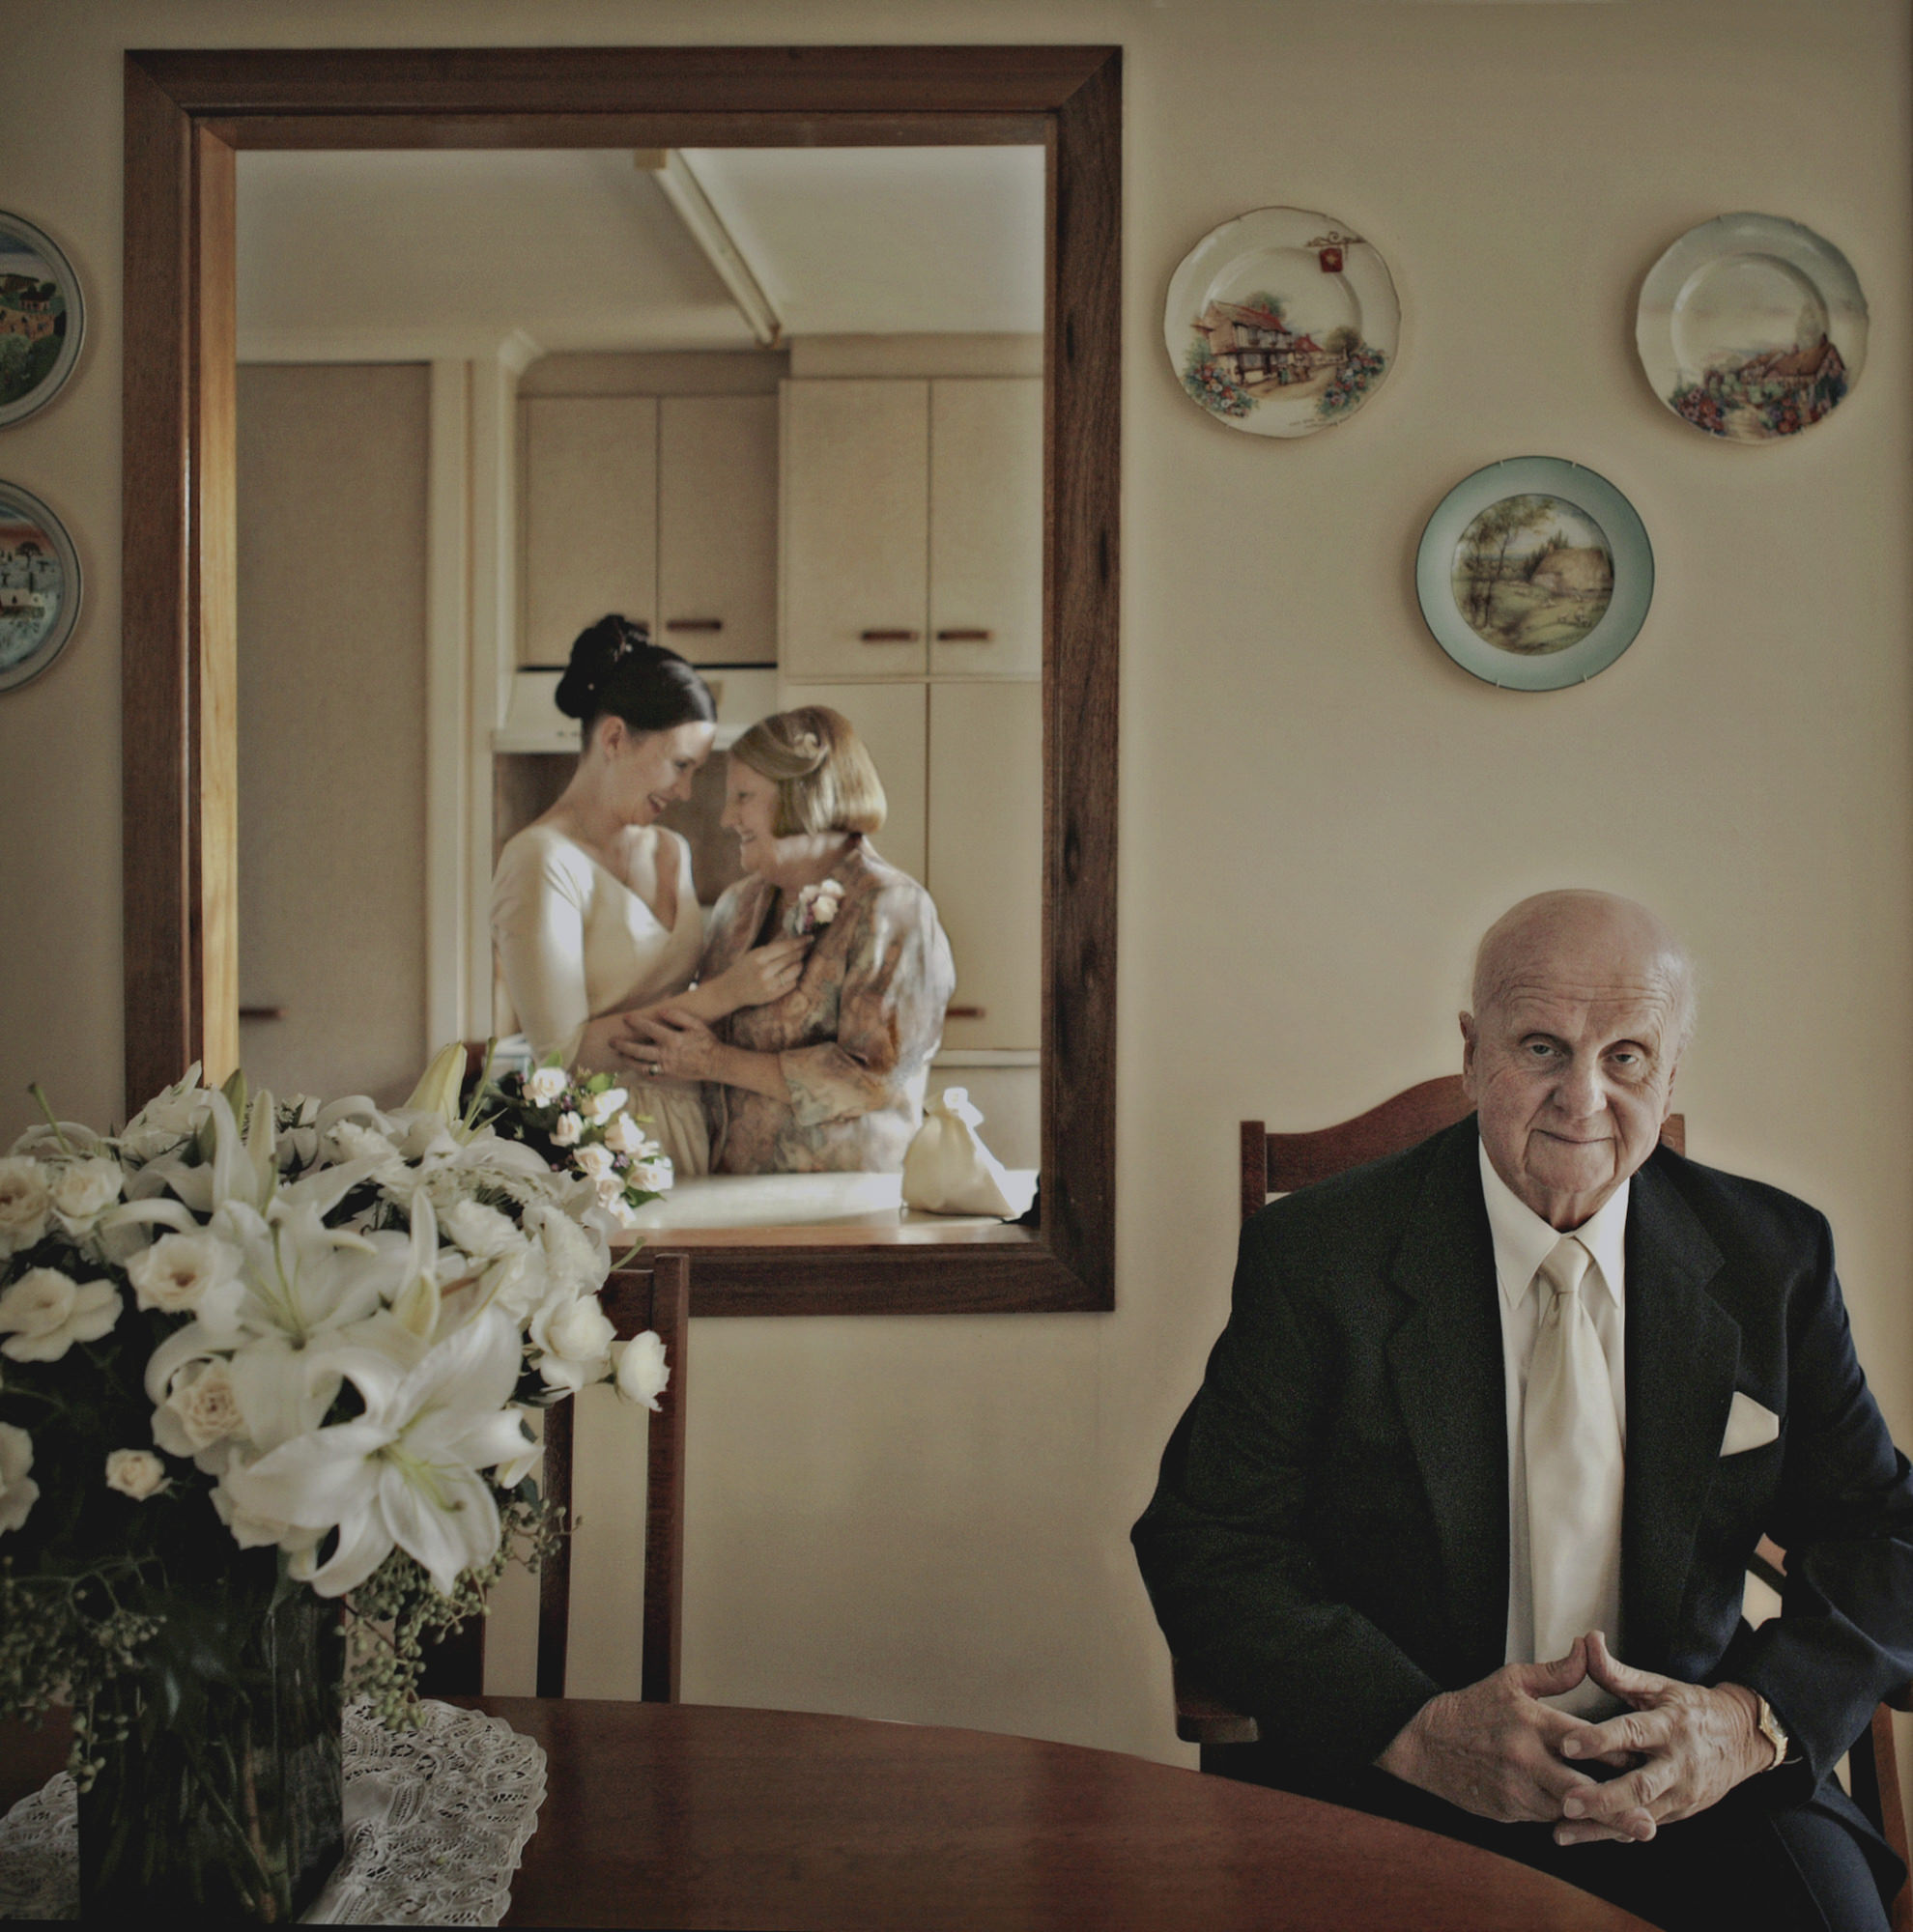 Documentary family portrait with bride and mother in mirror - Studio Impressions Photography